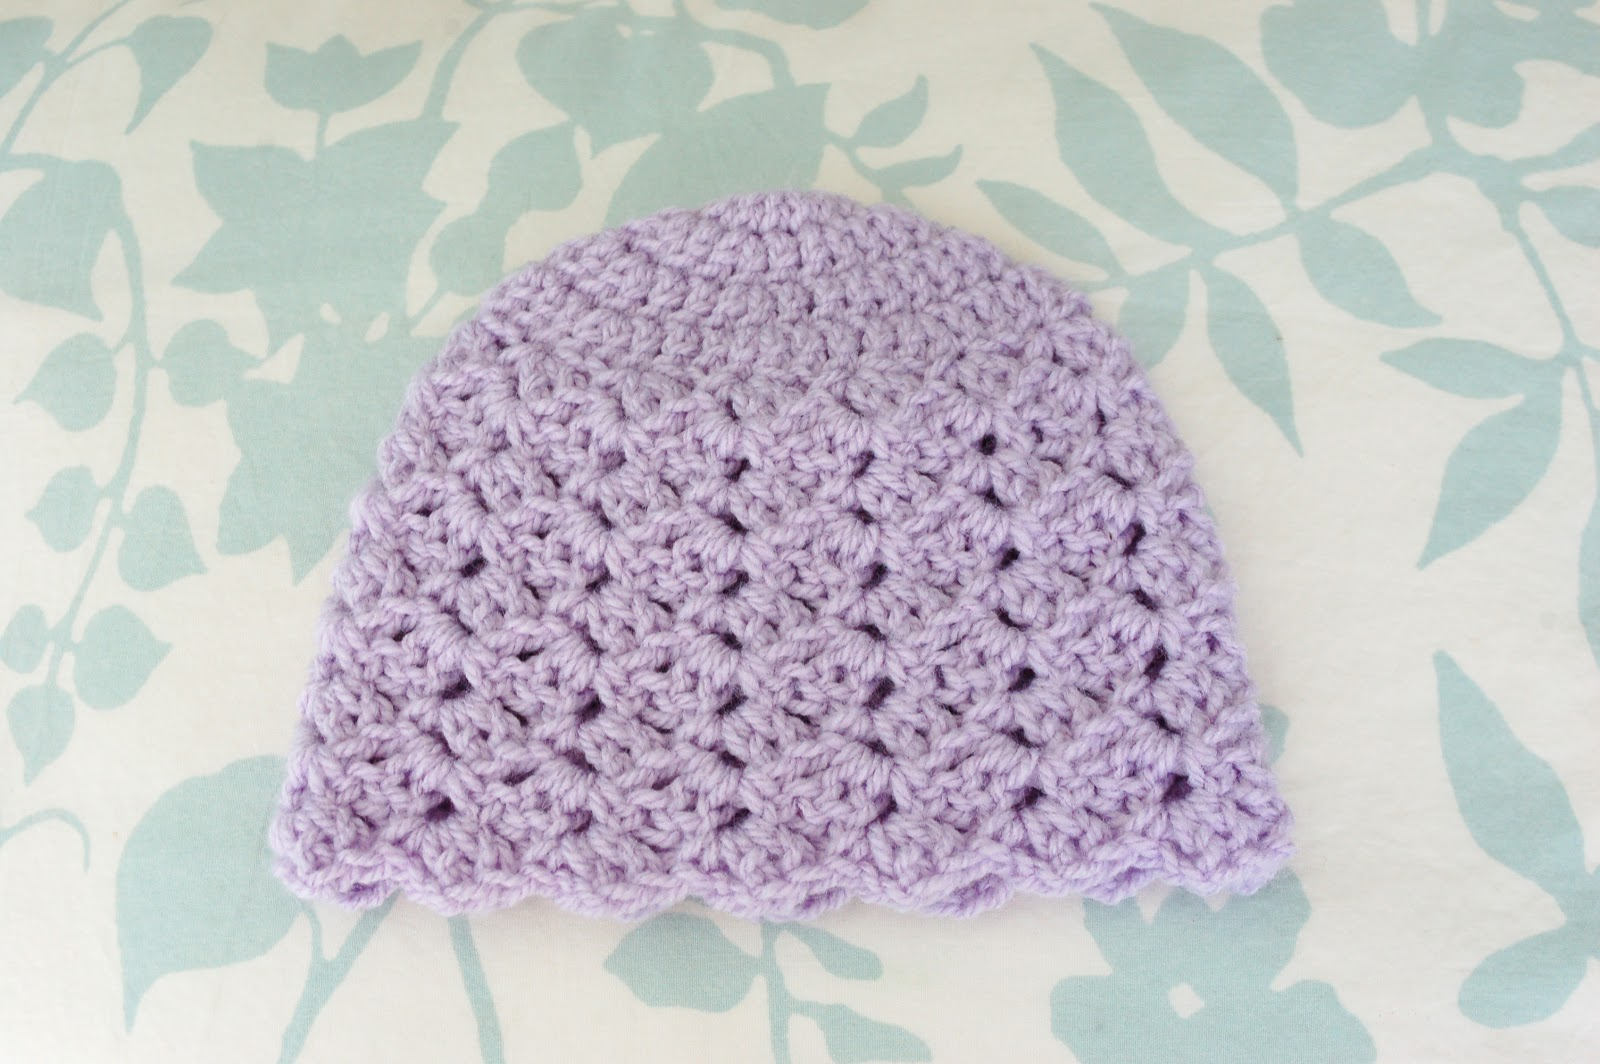 Free Crochet Patterns For Newborn Baby Hats : Alli Crafts: Free Pattern: Tulip Stitch Hat - Newborn